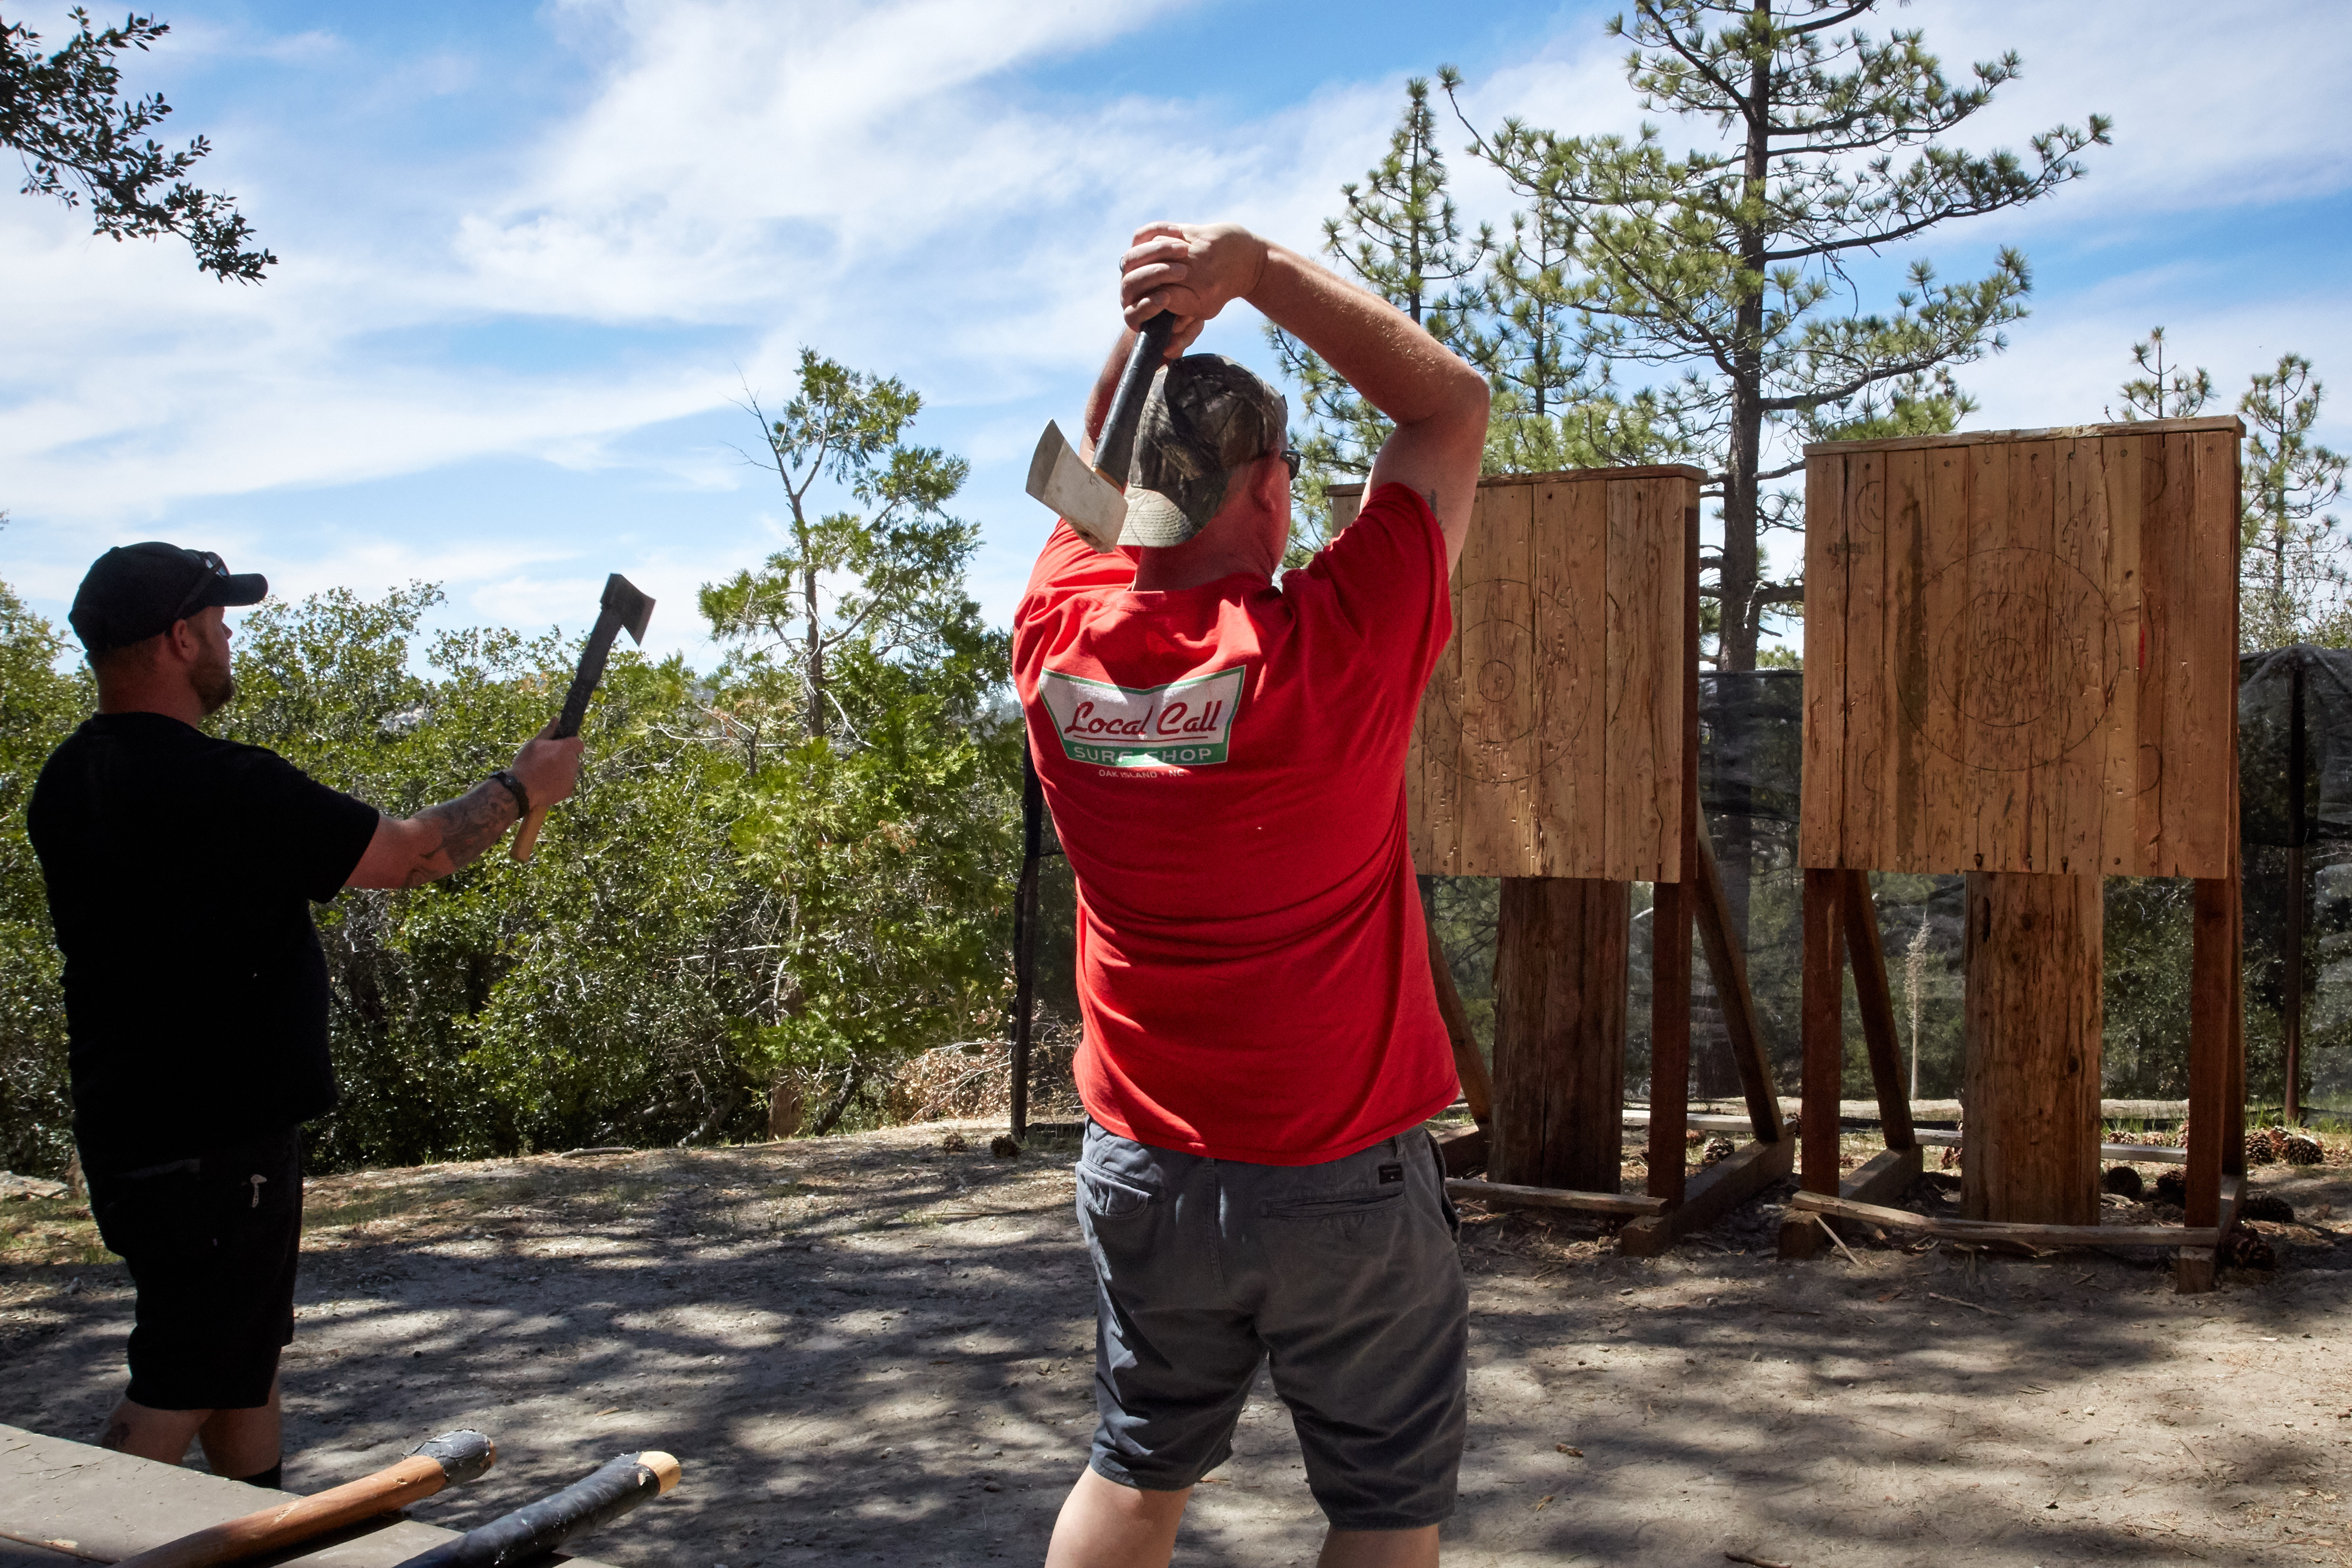 hatchet throwing man camp angeles crest